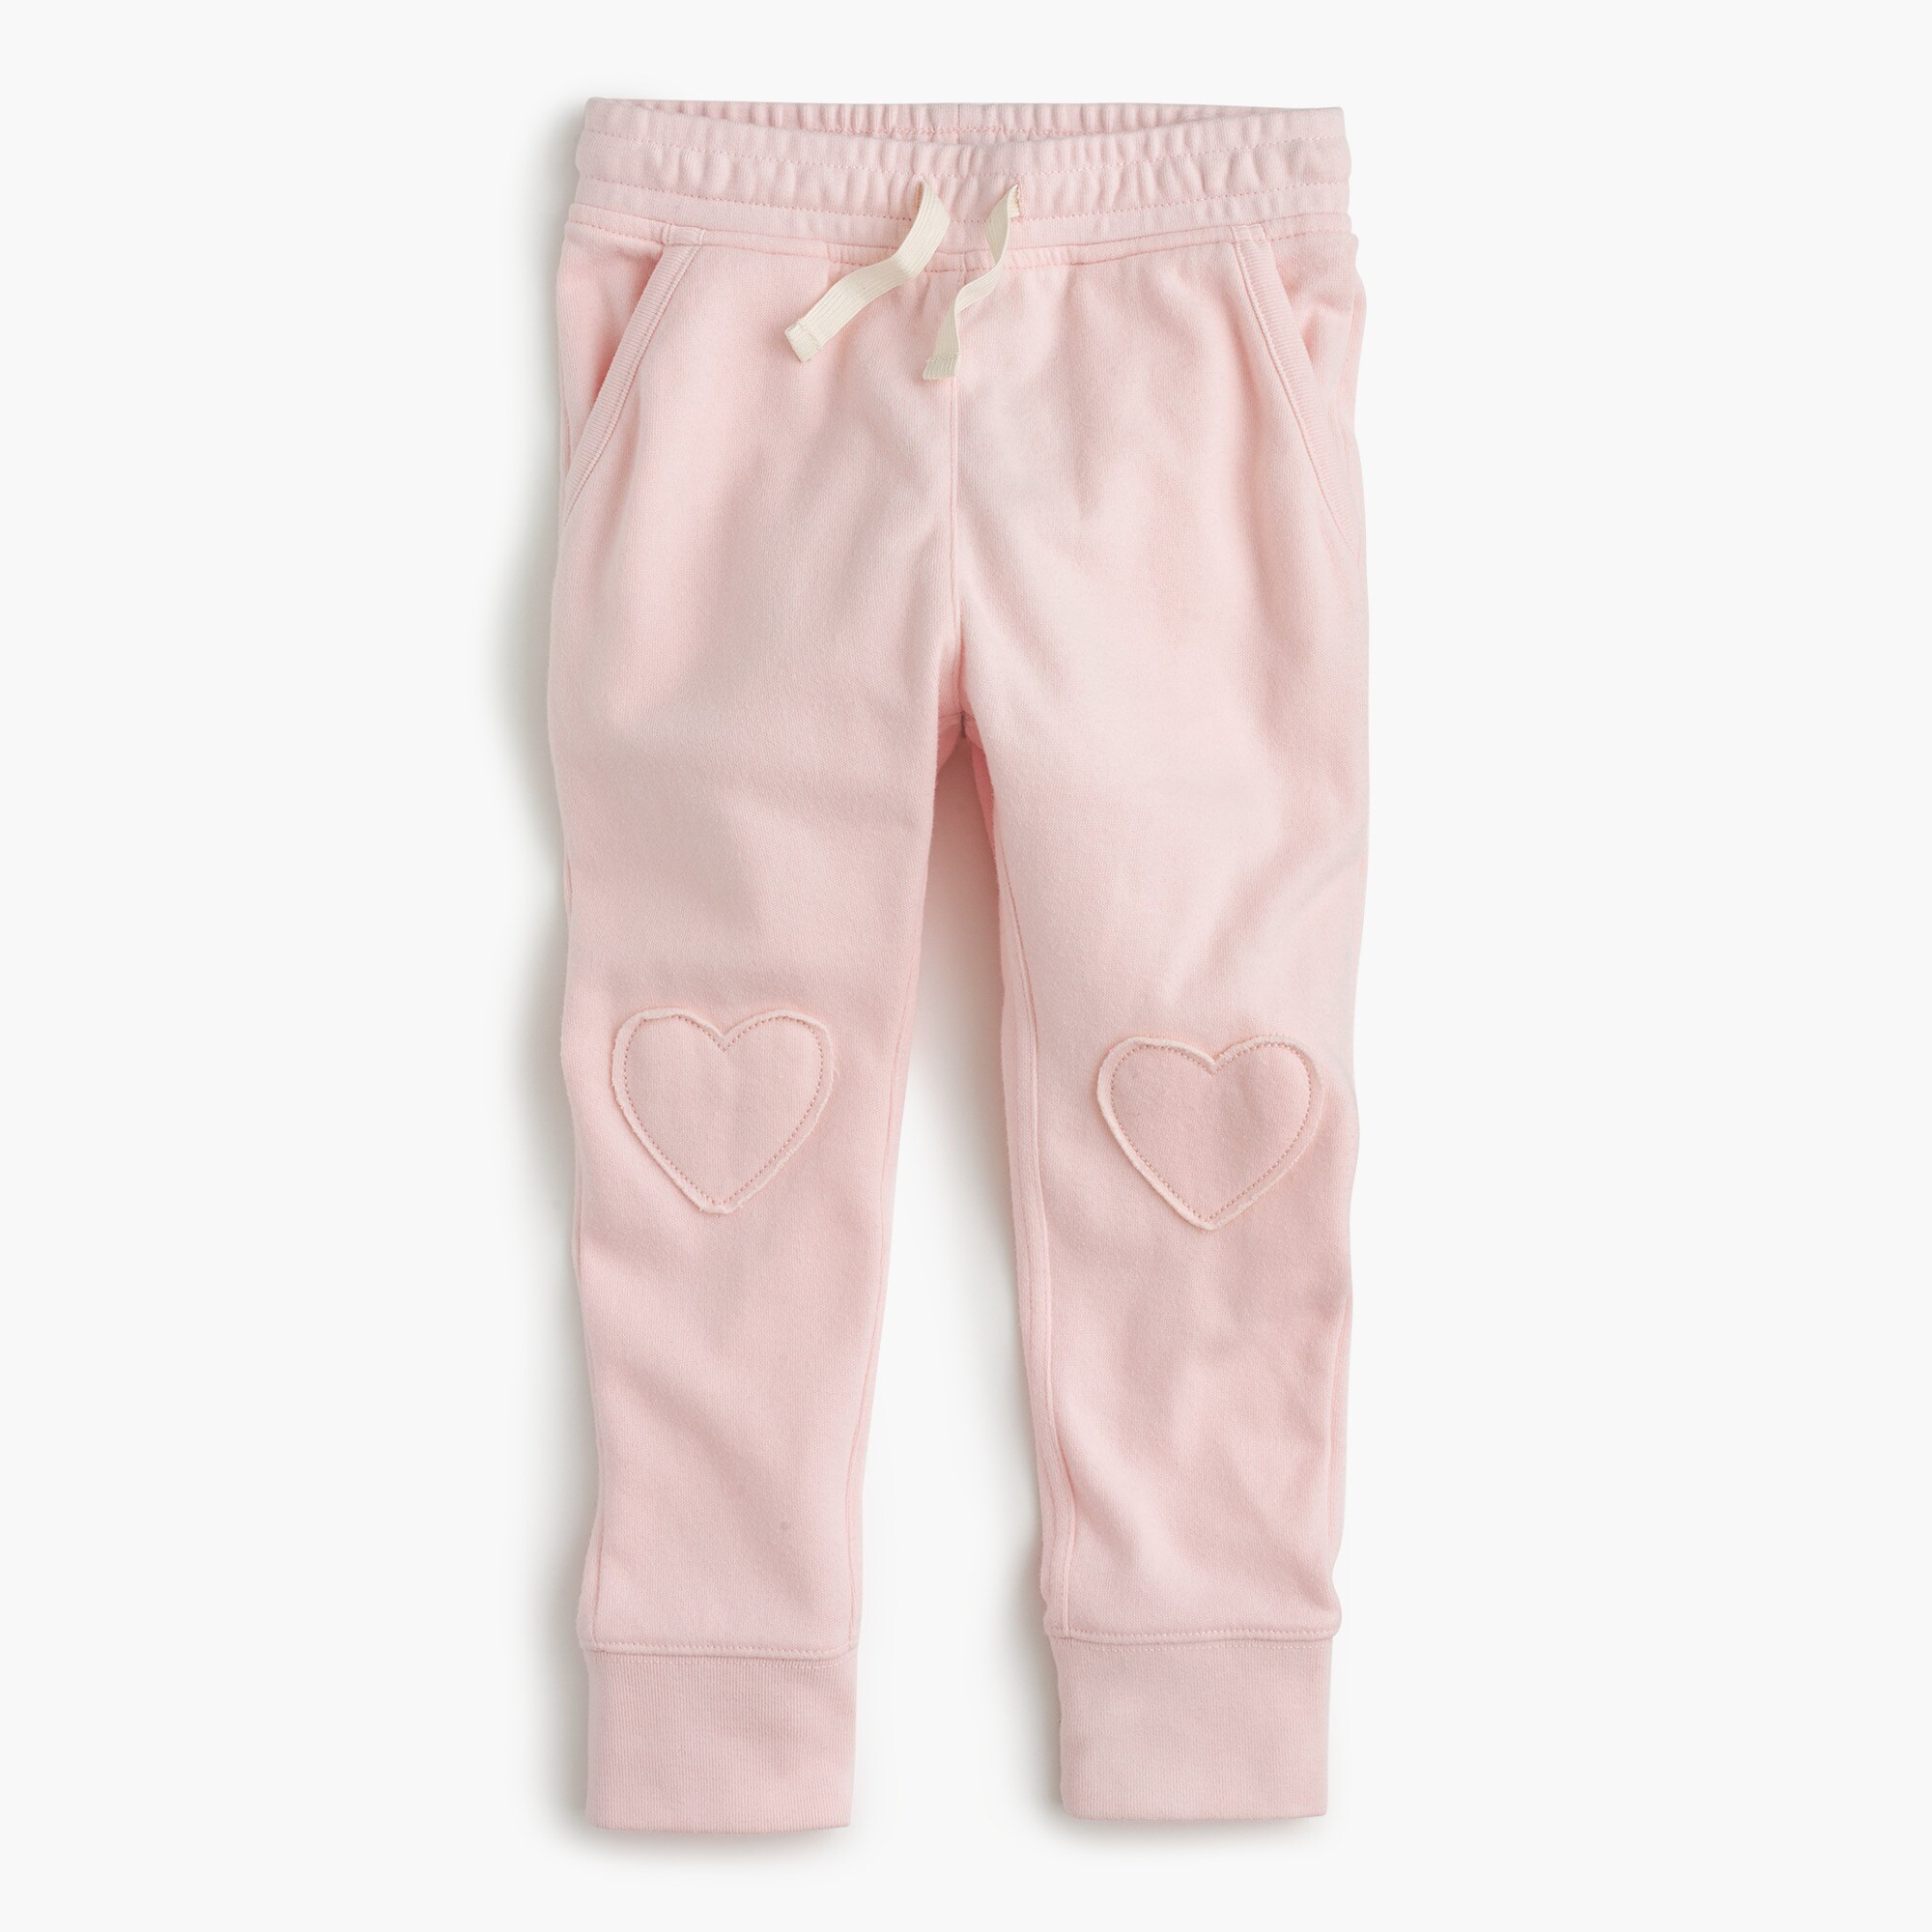 Image 2 for Girls' sweatpants with hearts on knees